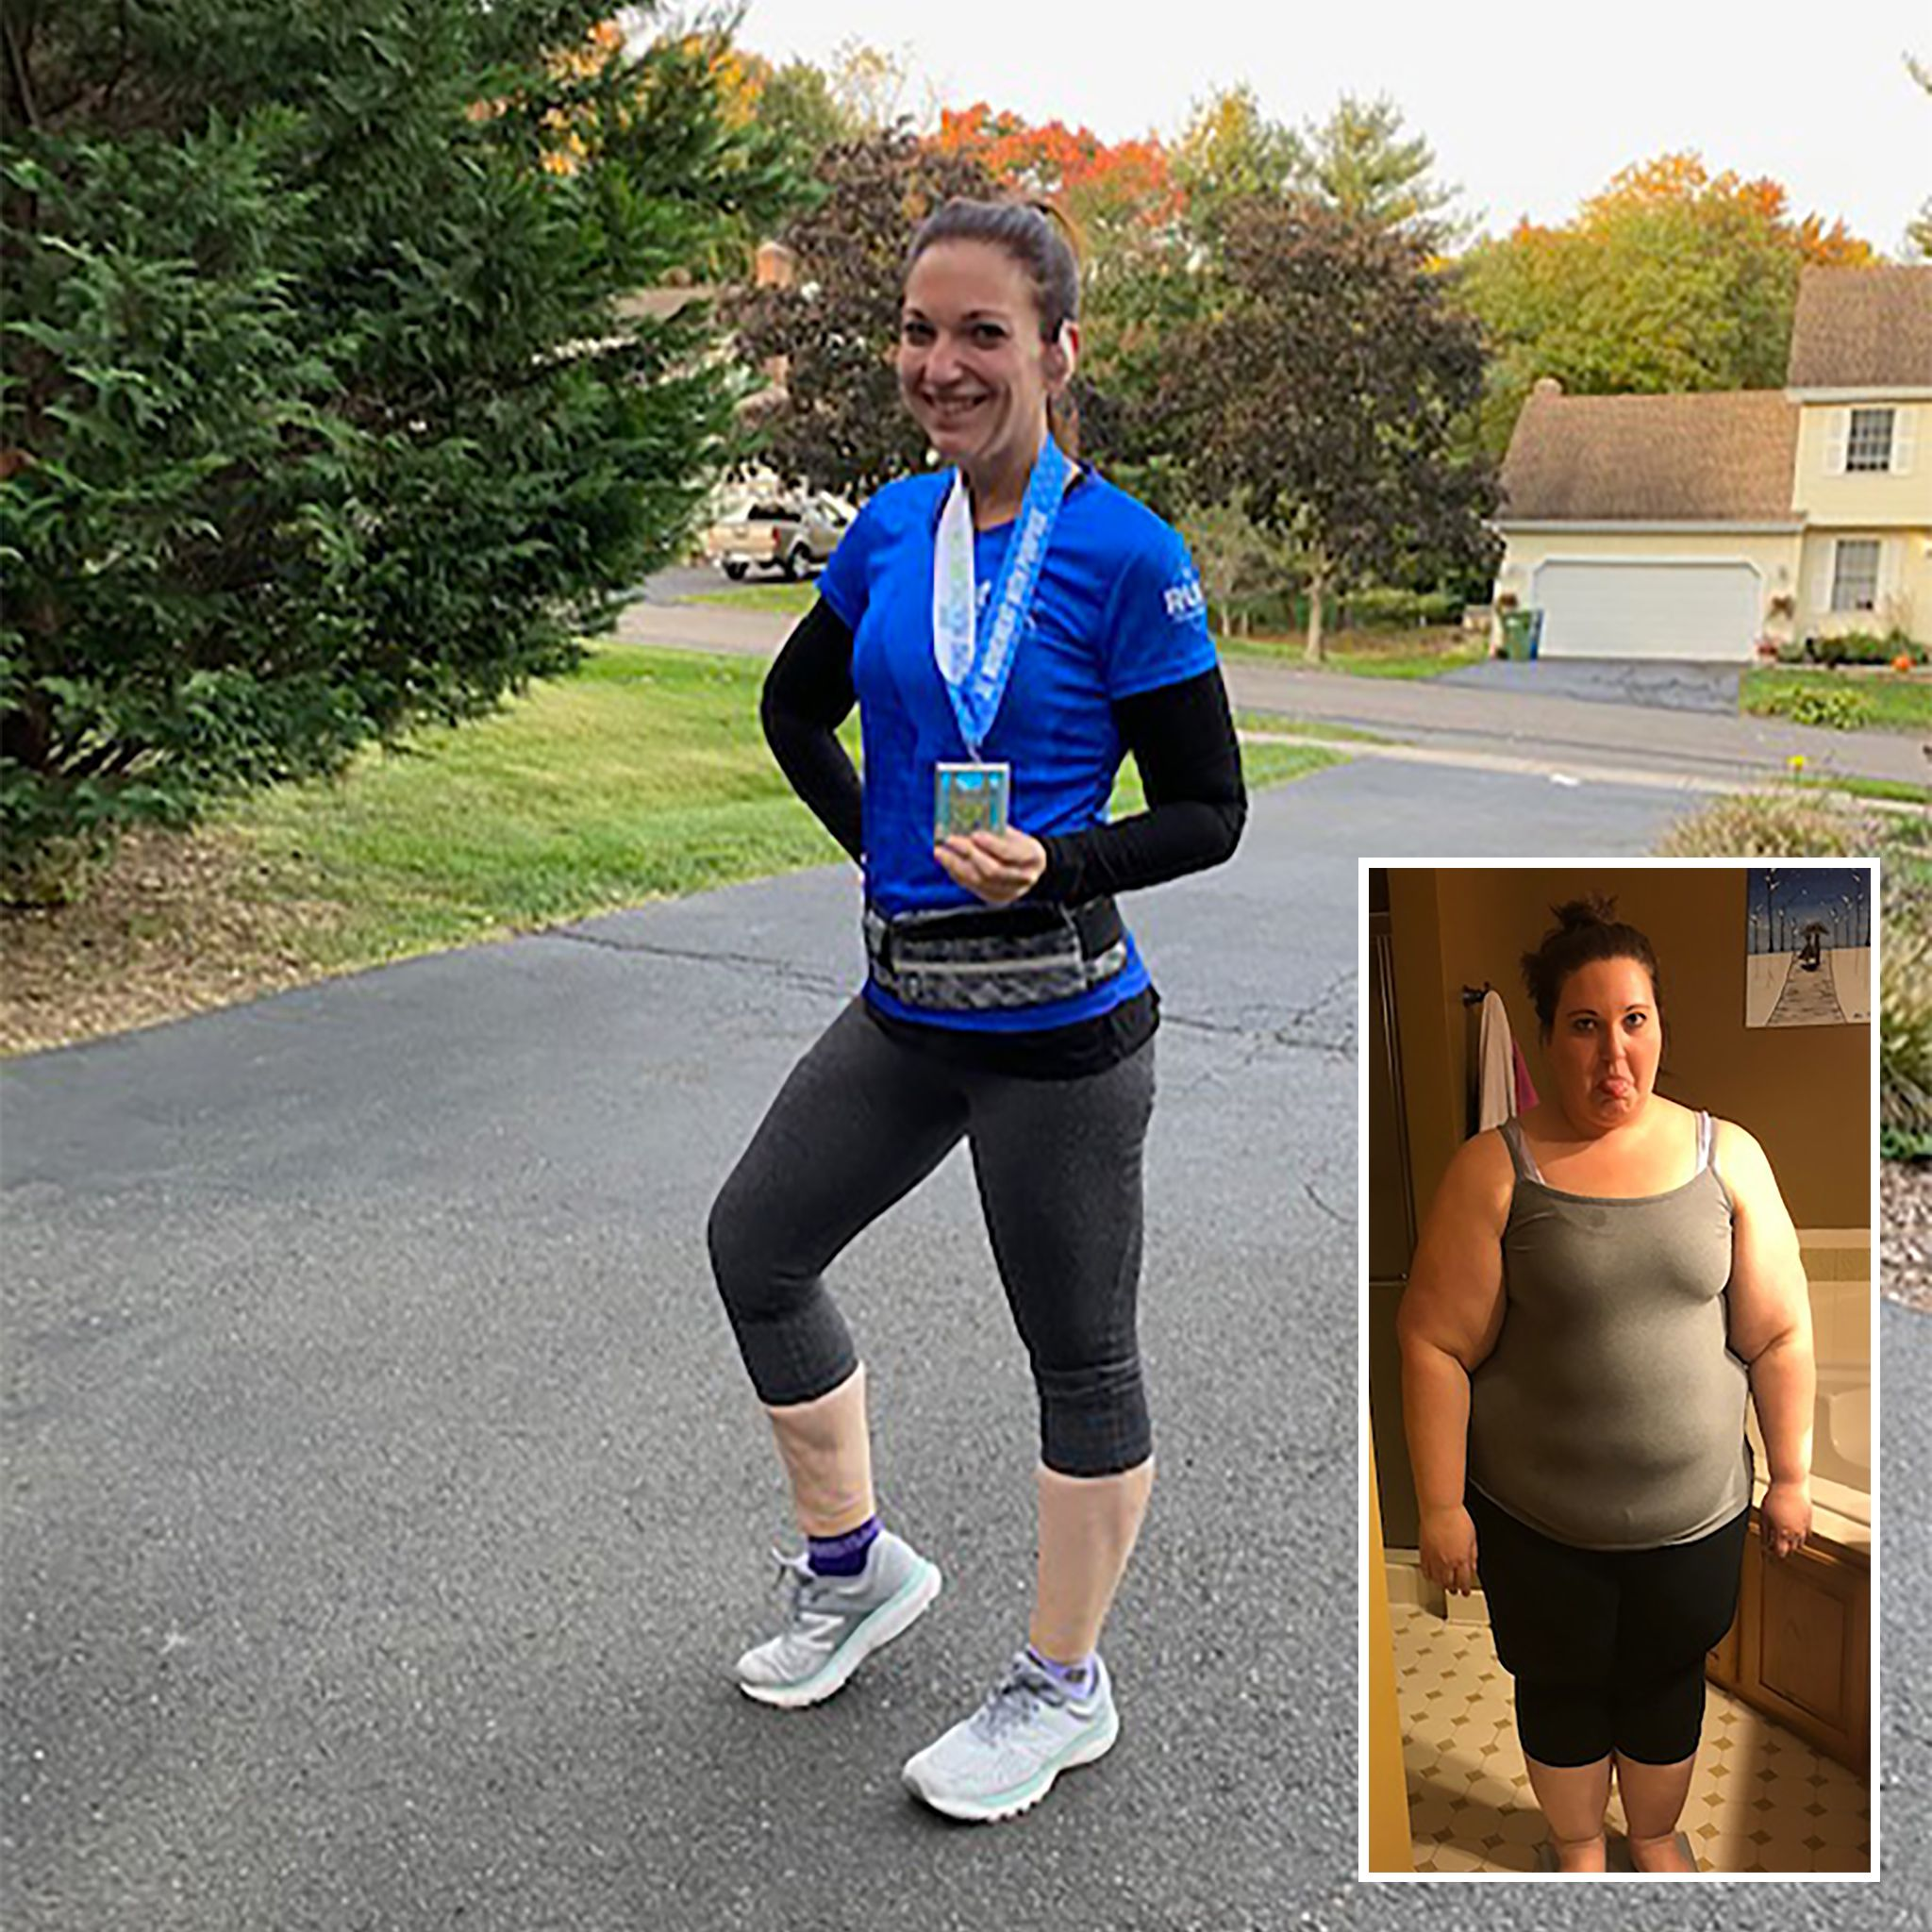 When This Mother of Two Started Running, She Realized It Was the Self-Care She Never Had